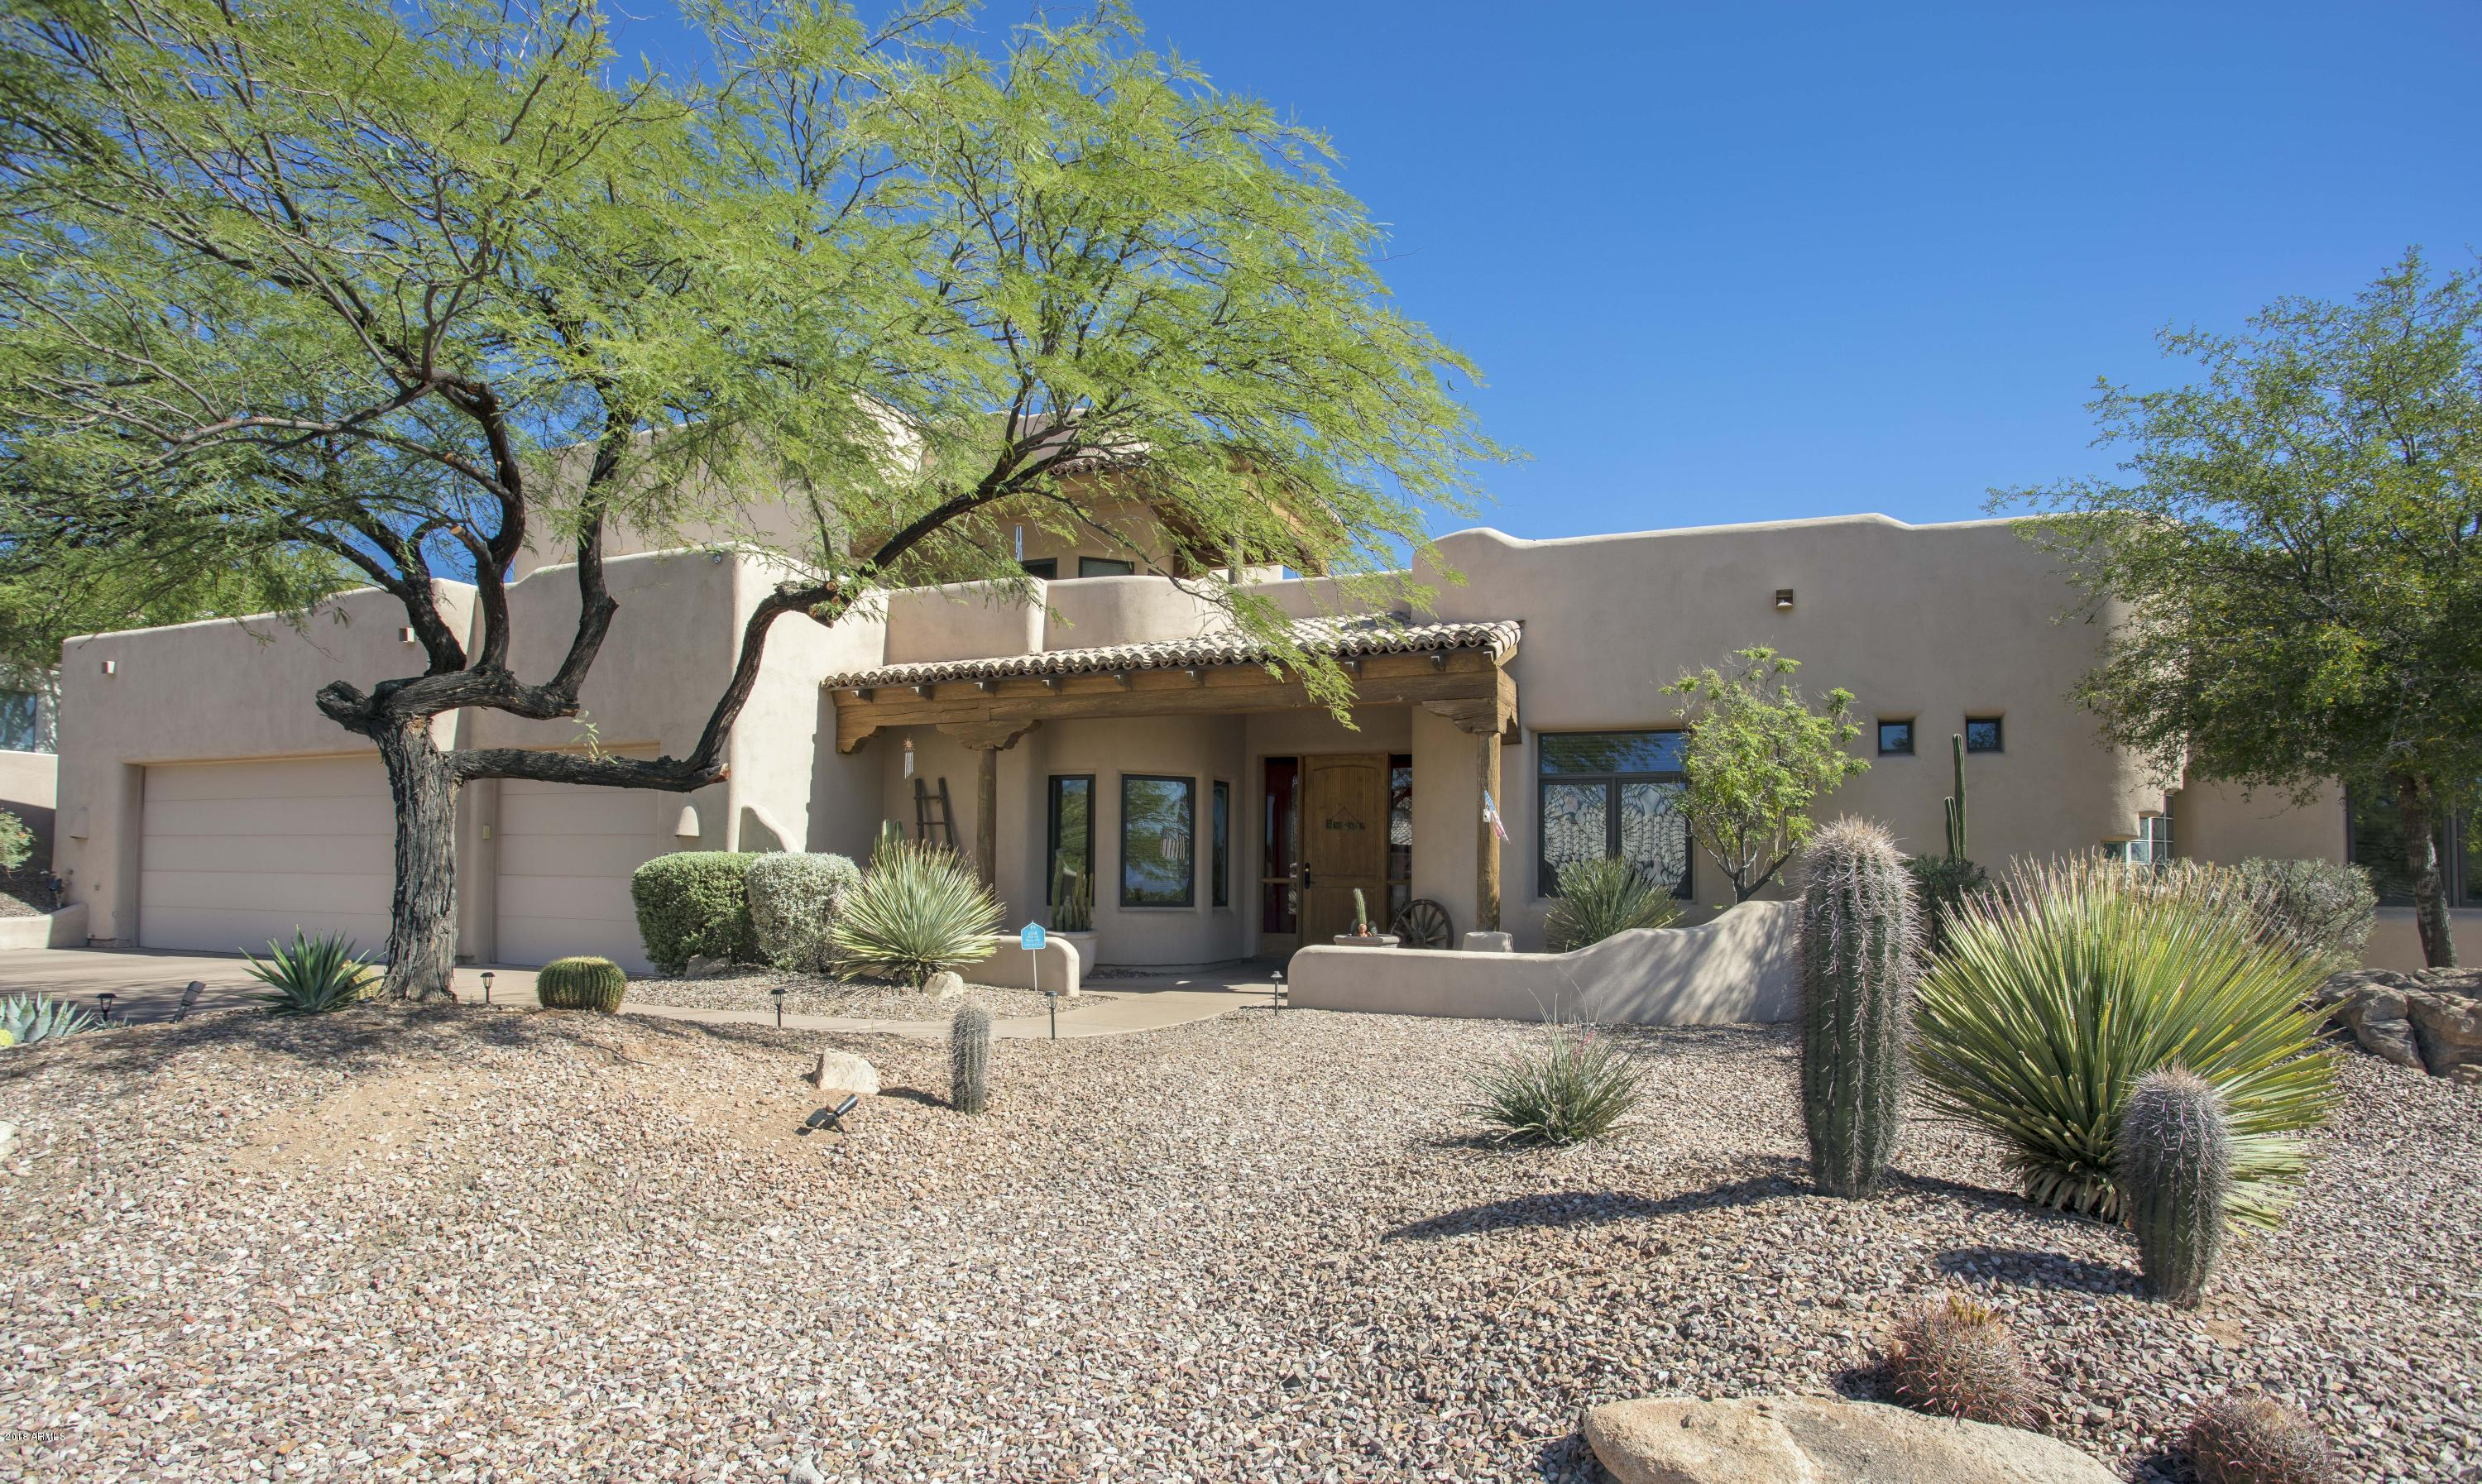 Photo of 16026 E Tumbleweed Drive, Fountain Hills, AZ 85268